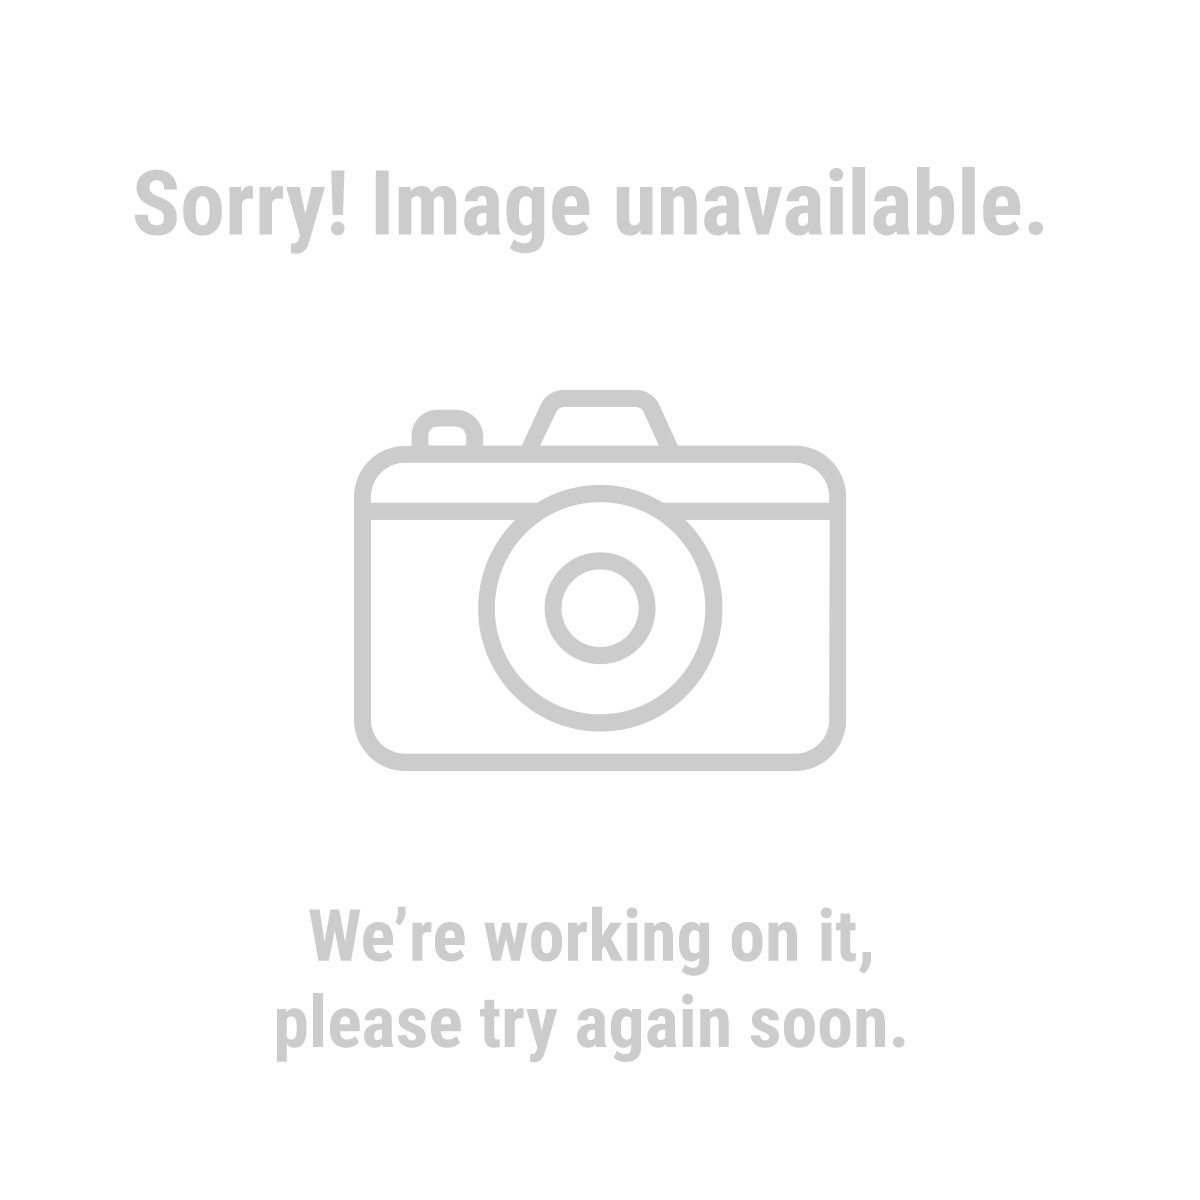 Dc Clamp Harbor Freight : Digital clamp meter